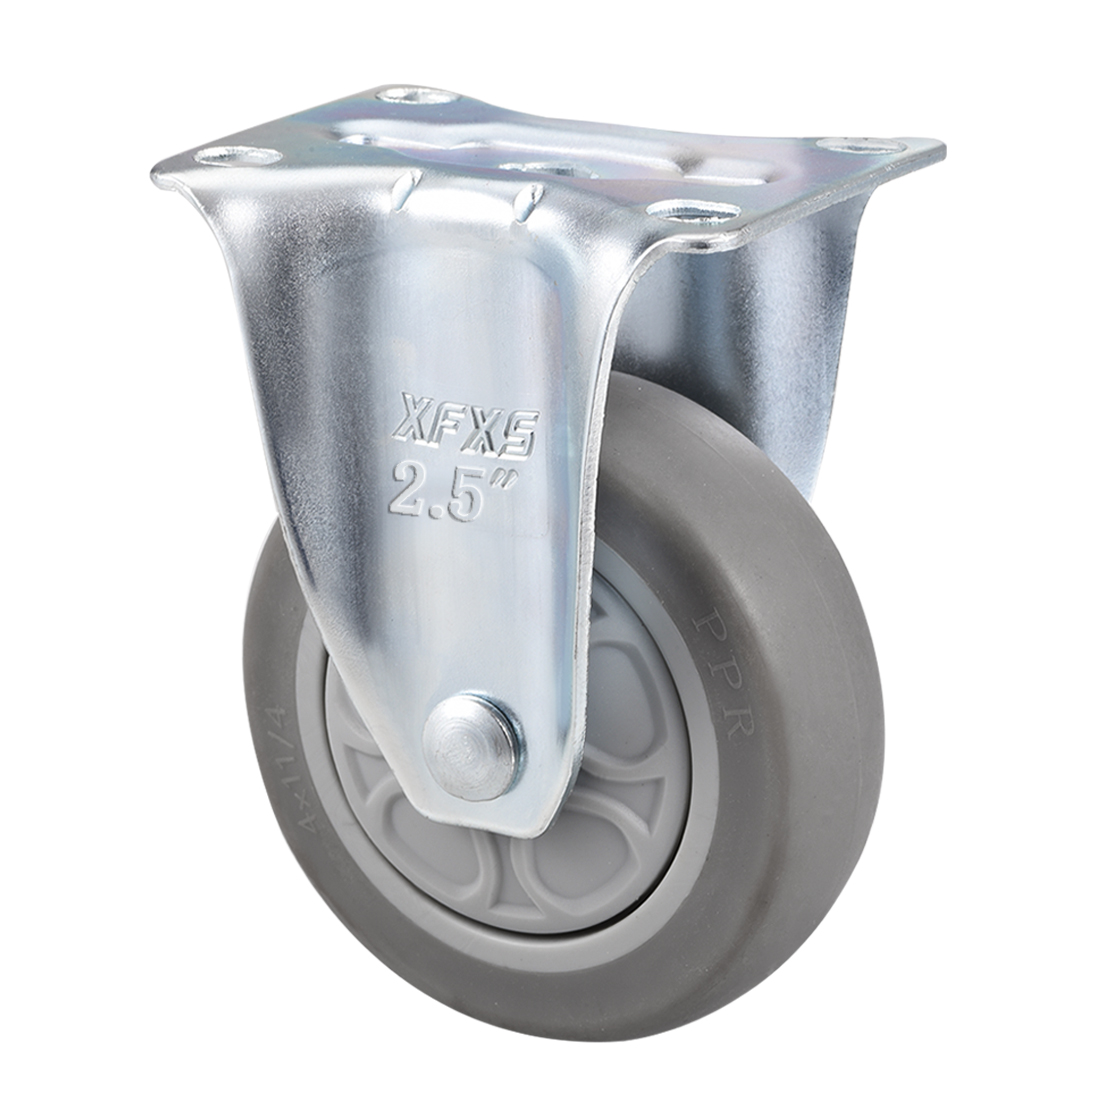 Fixed Caster Wheels 2.5inch TPR Caster Top Plate Mounted 242lb Capacity